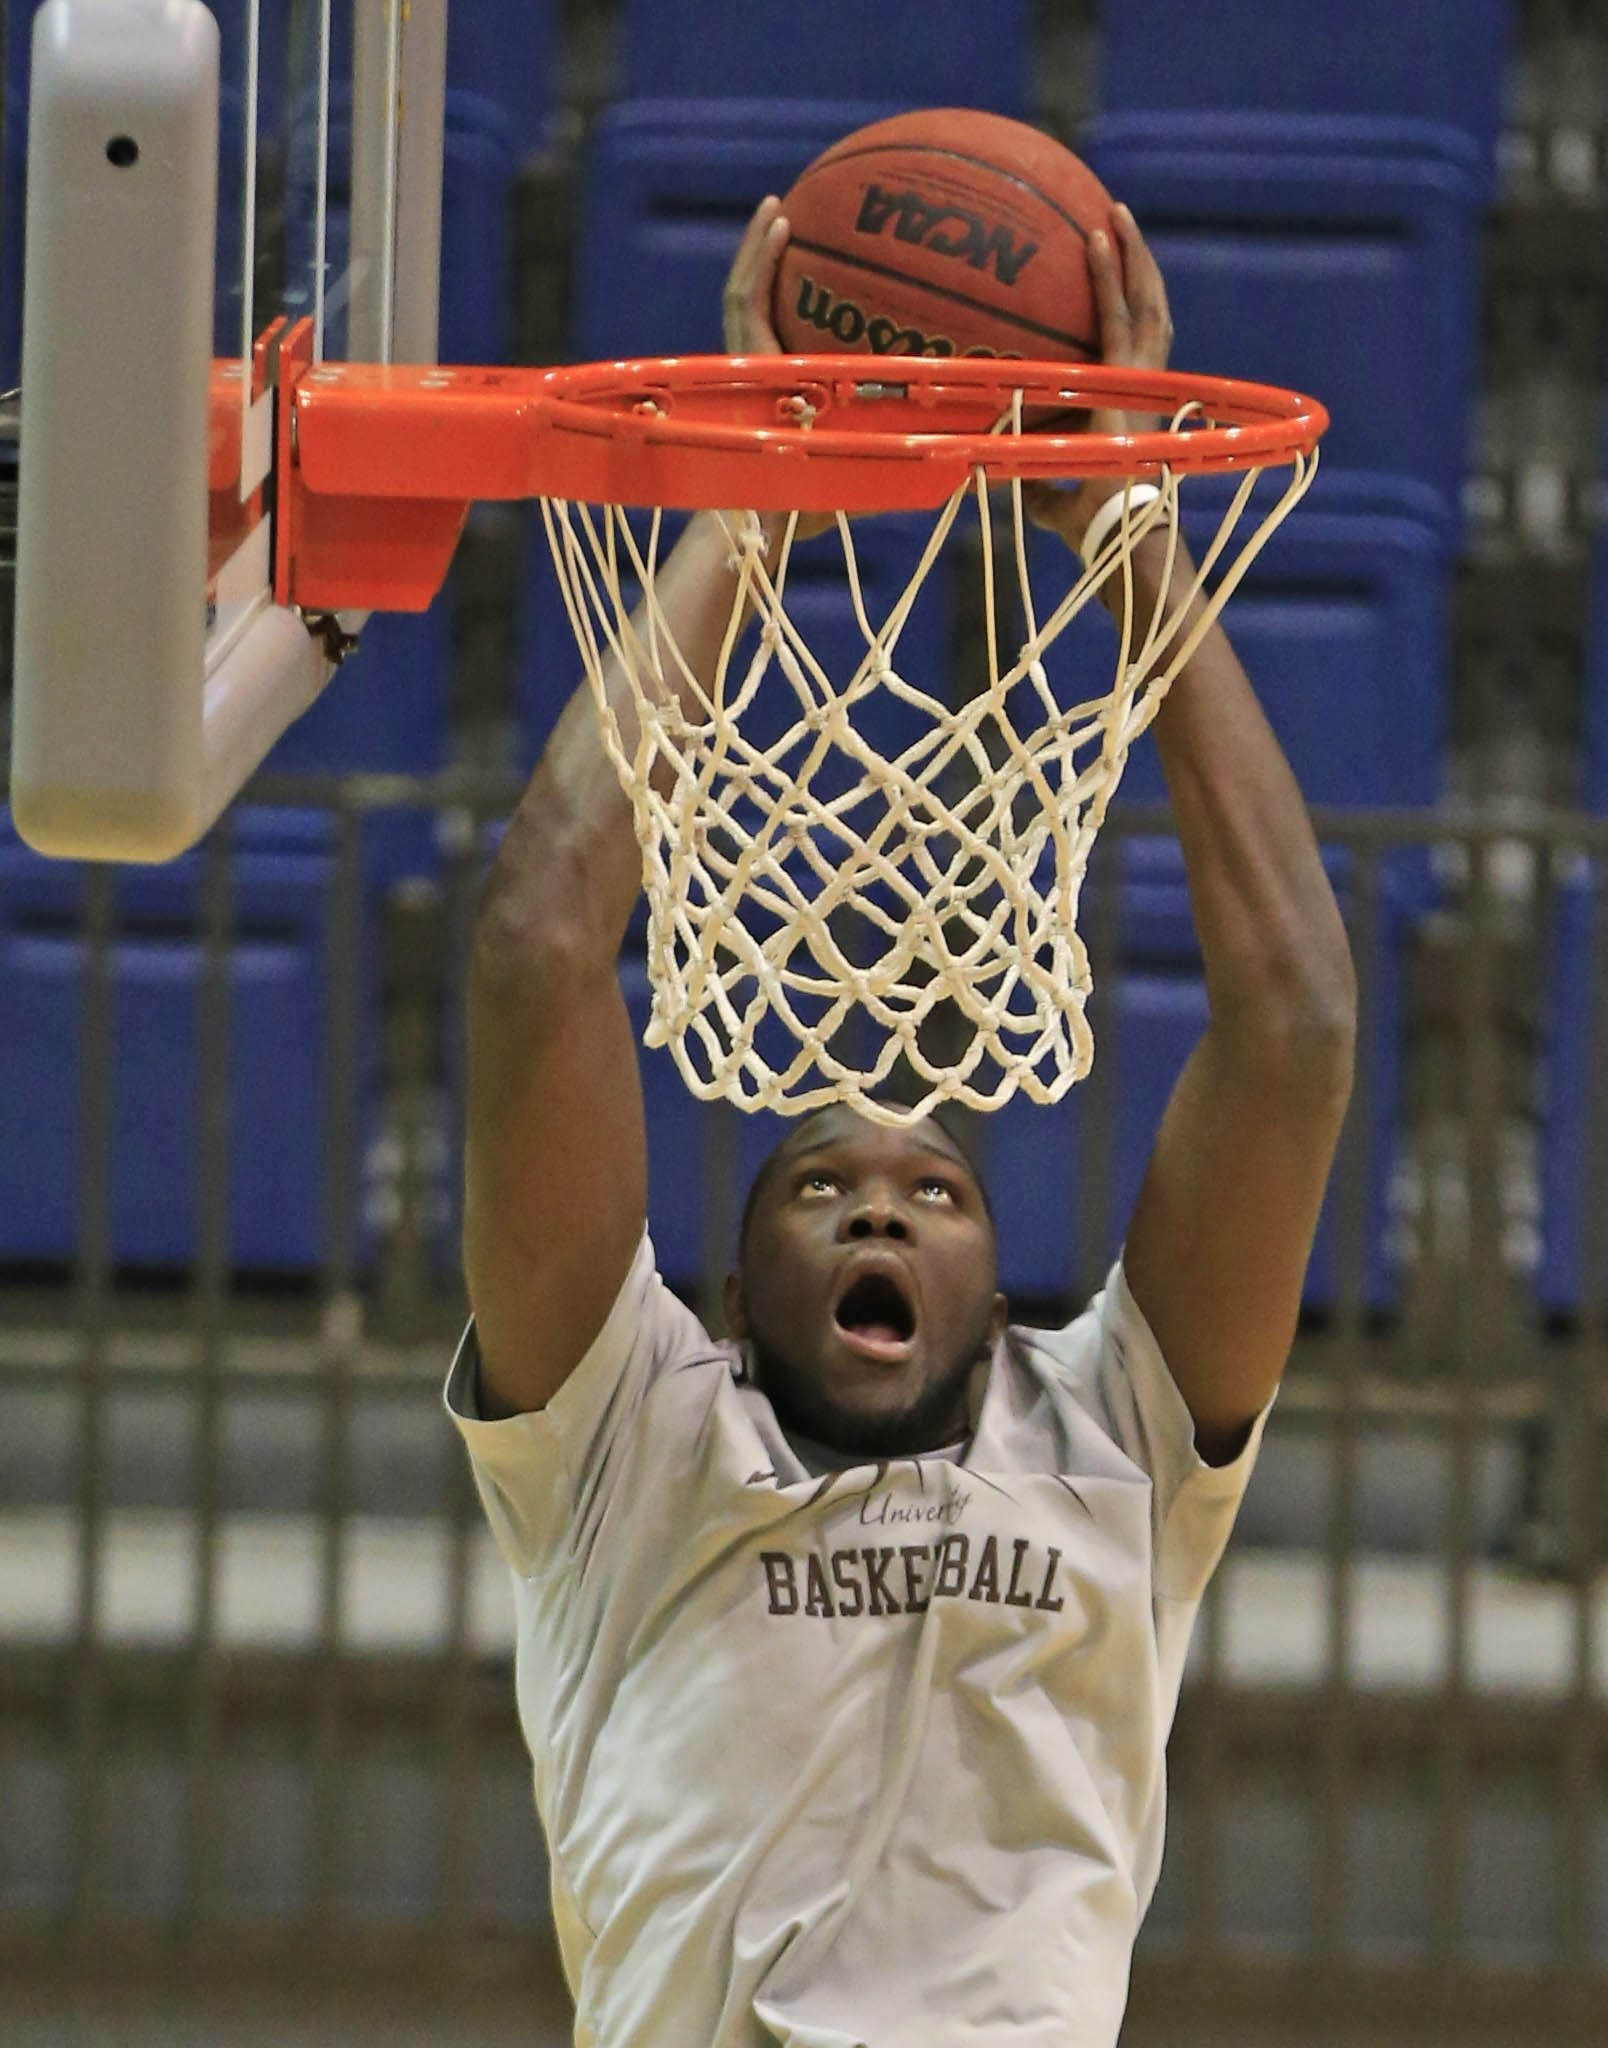 Bona's 7-foot center Youssou Ndoye will be a stiff challenge for Canisius.